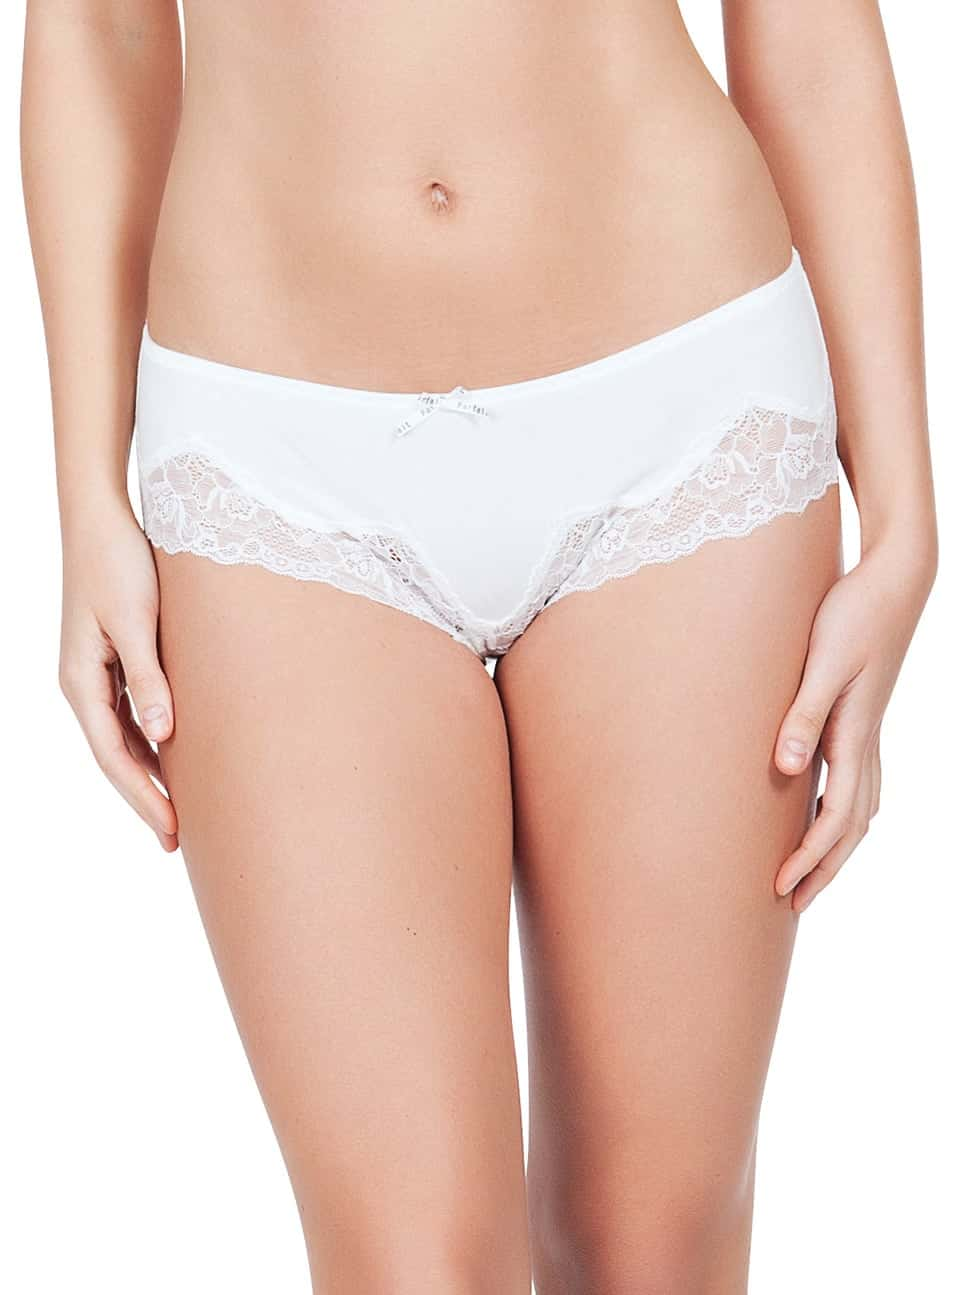 Tess HipsterP5025 Ivory1 - Tess Hipster - Ivory - P5025